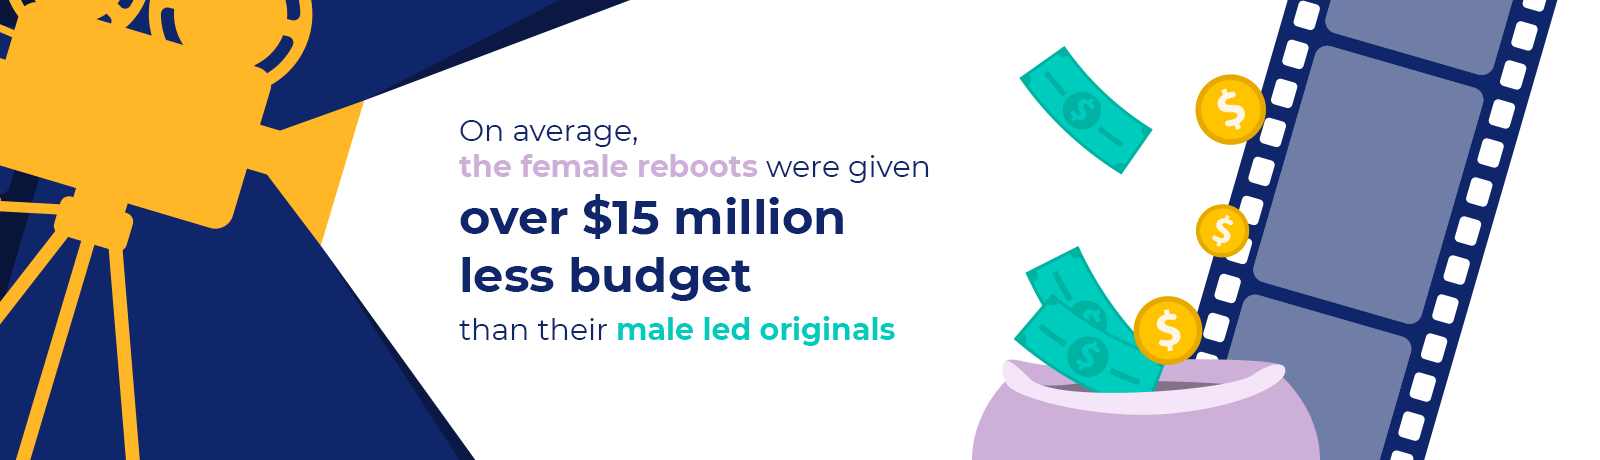 infographic - female reboots budget